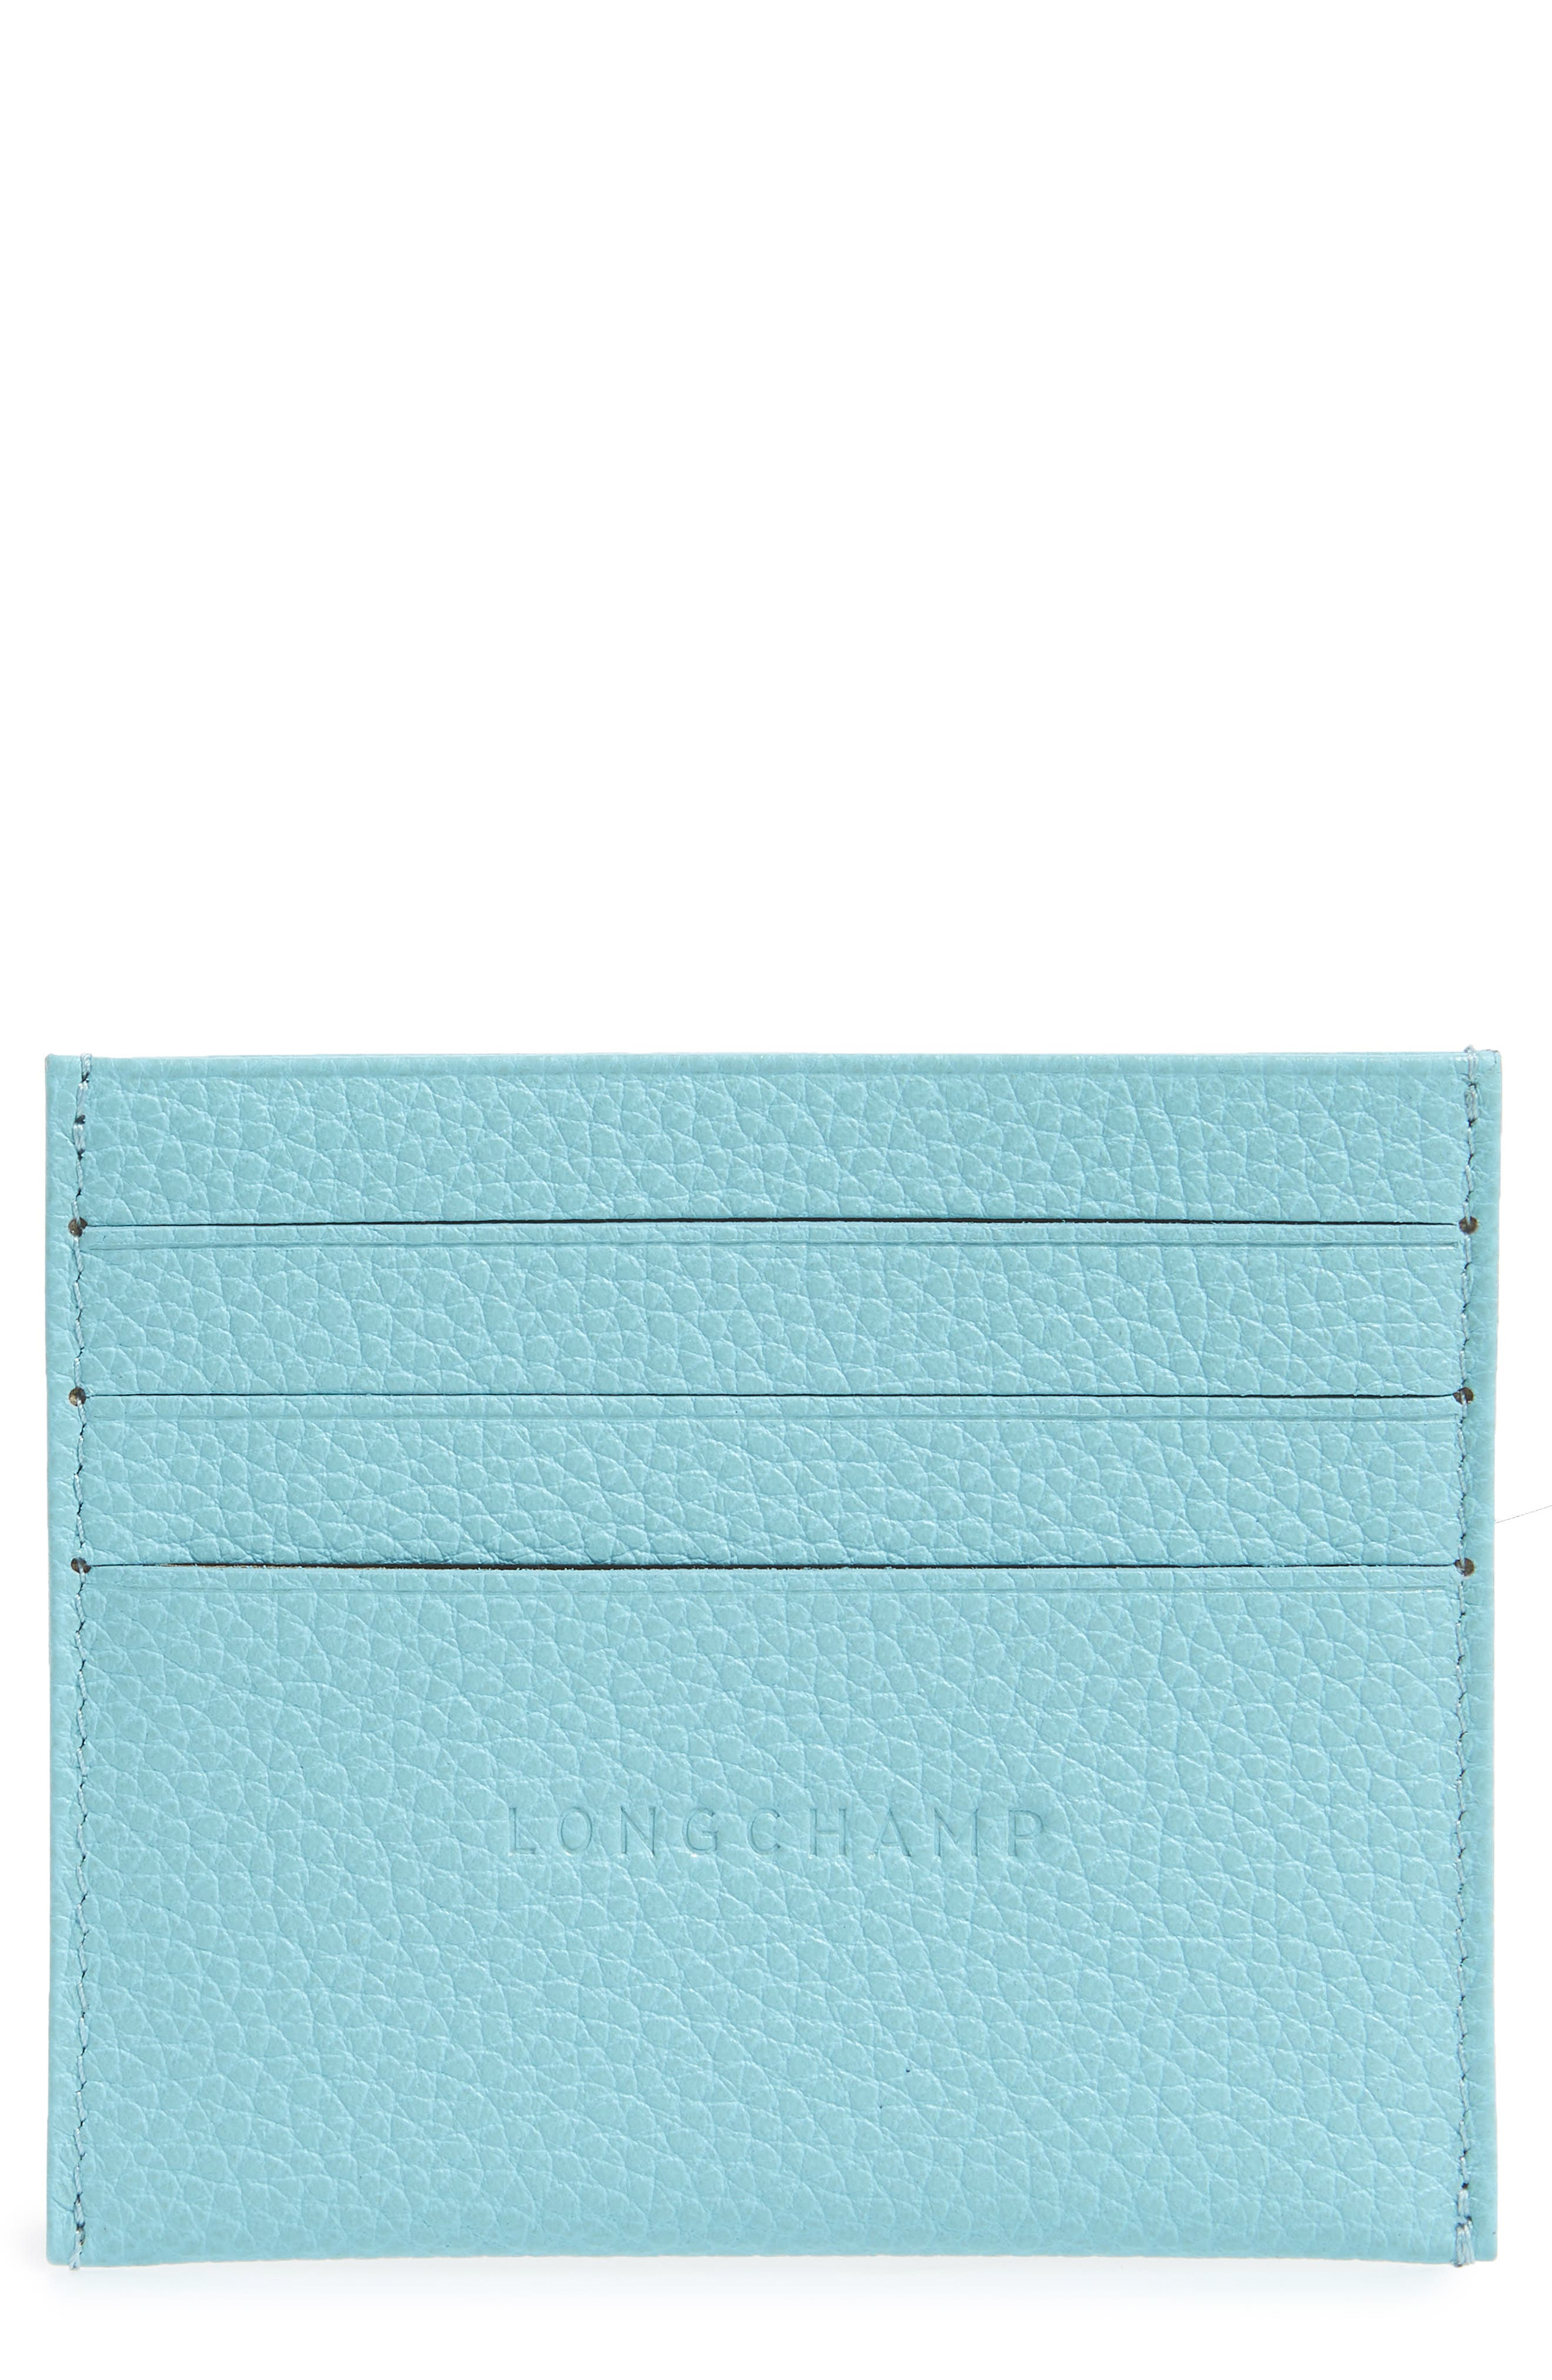 Main Image - Longchamp 'Le Foulonne' Pebbled Leather Card Holder